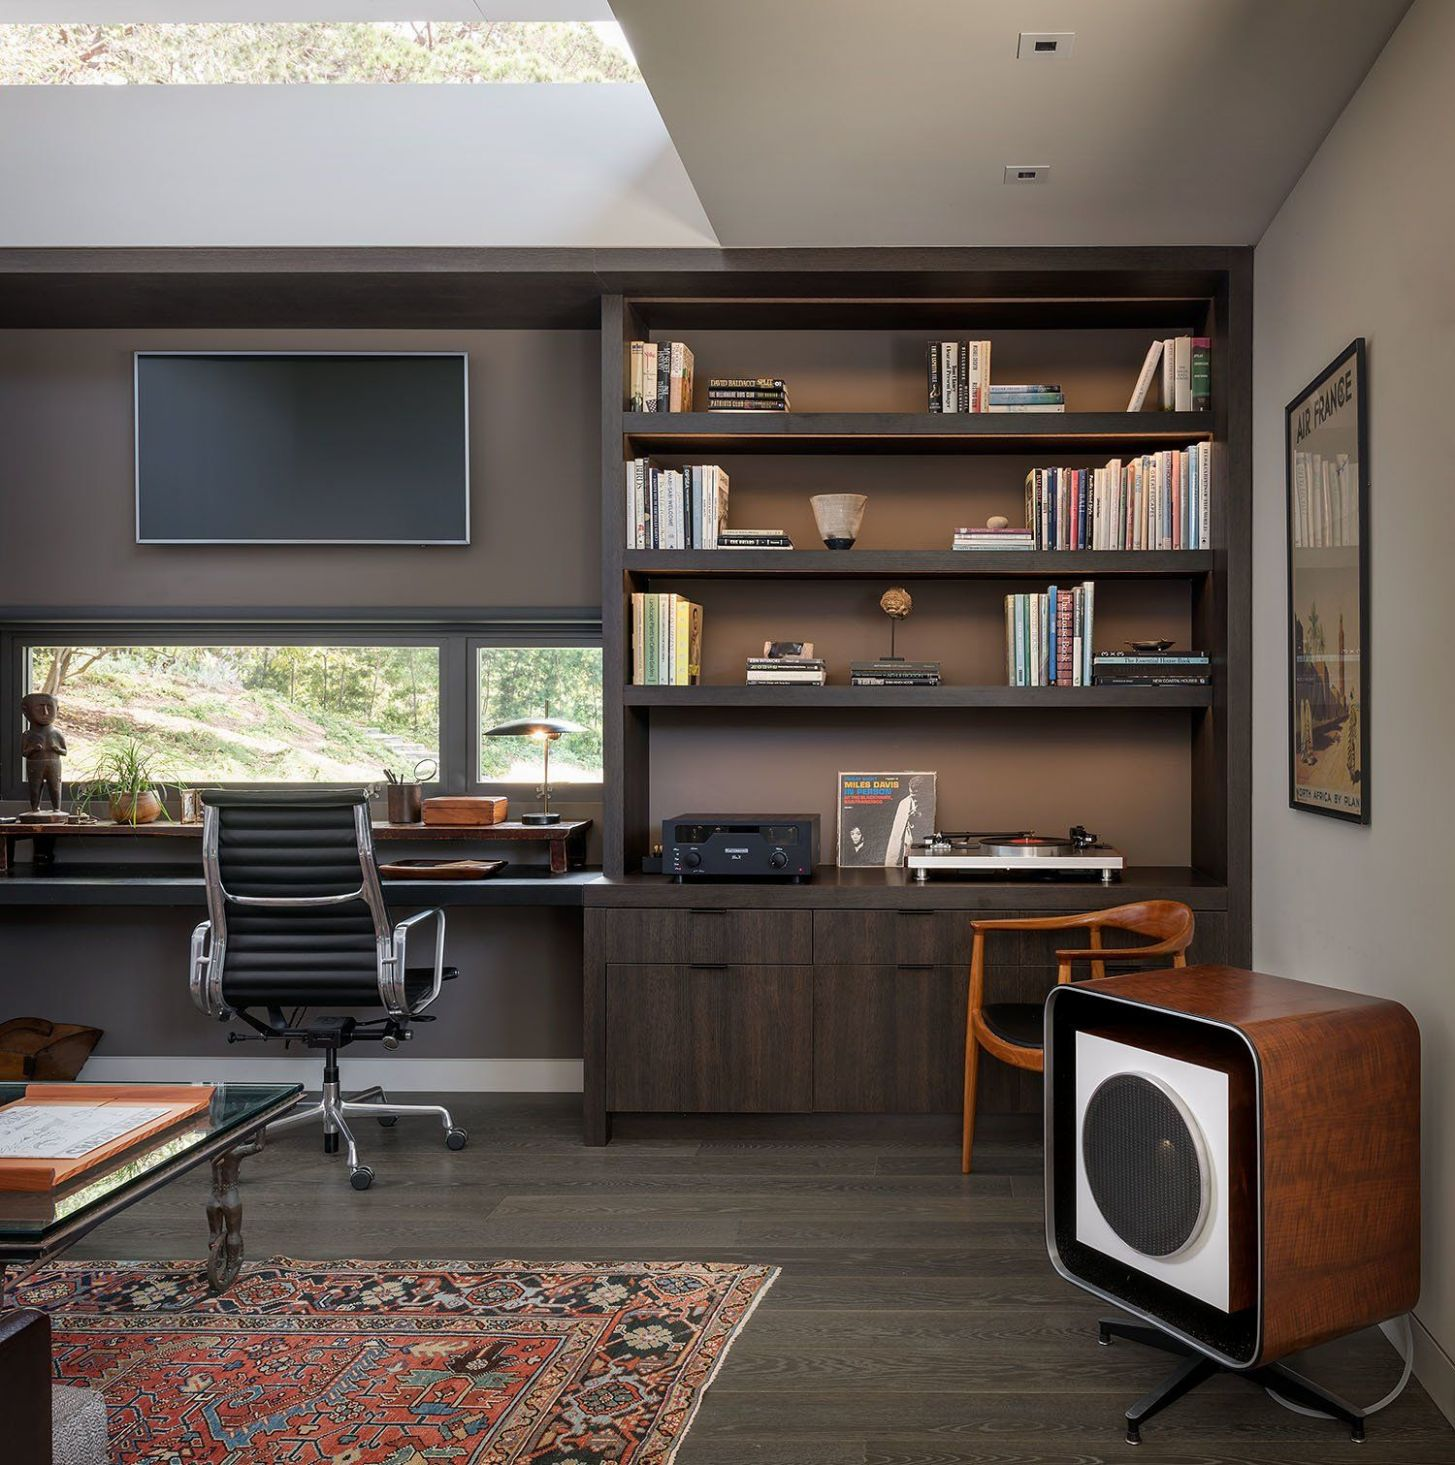 9 Home Office Designs & Decorating Ideas (With images) | Home ..